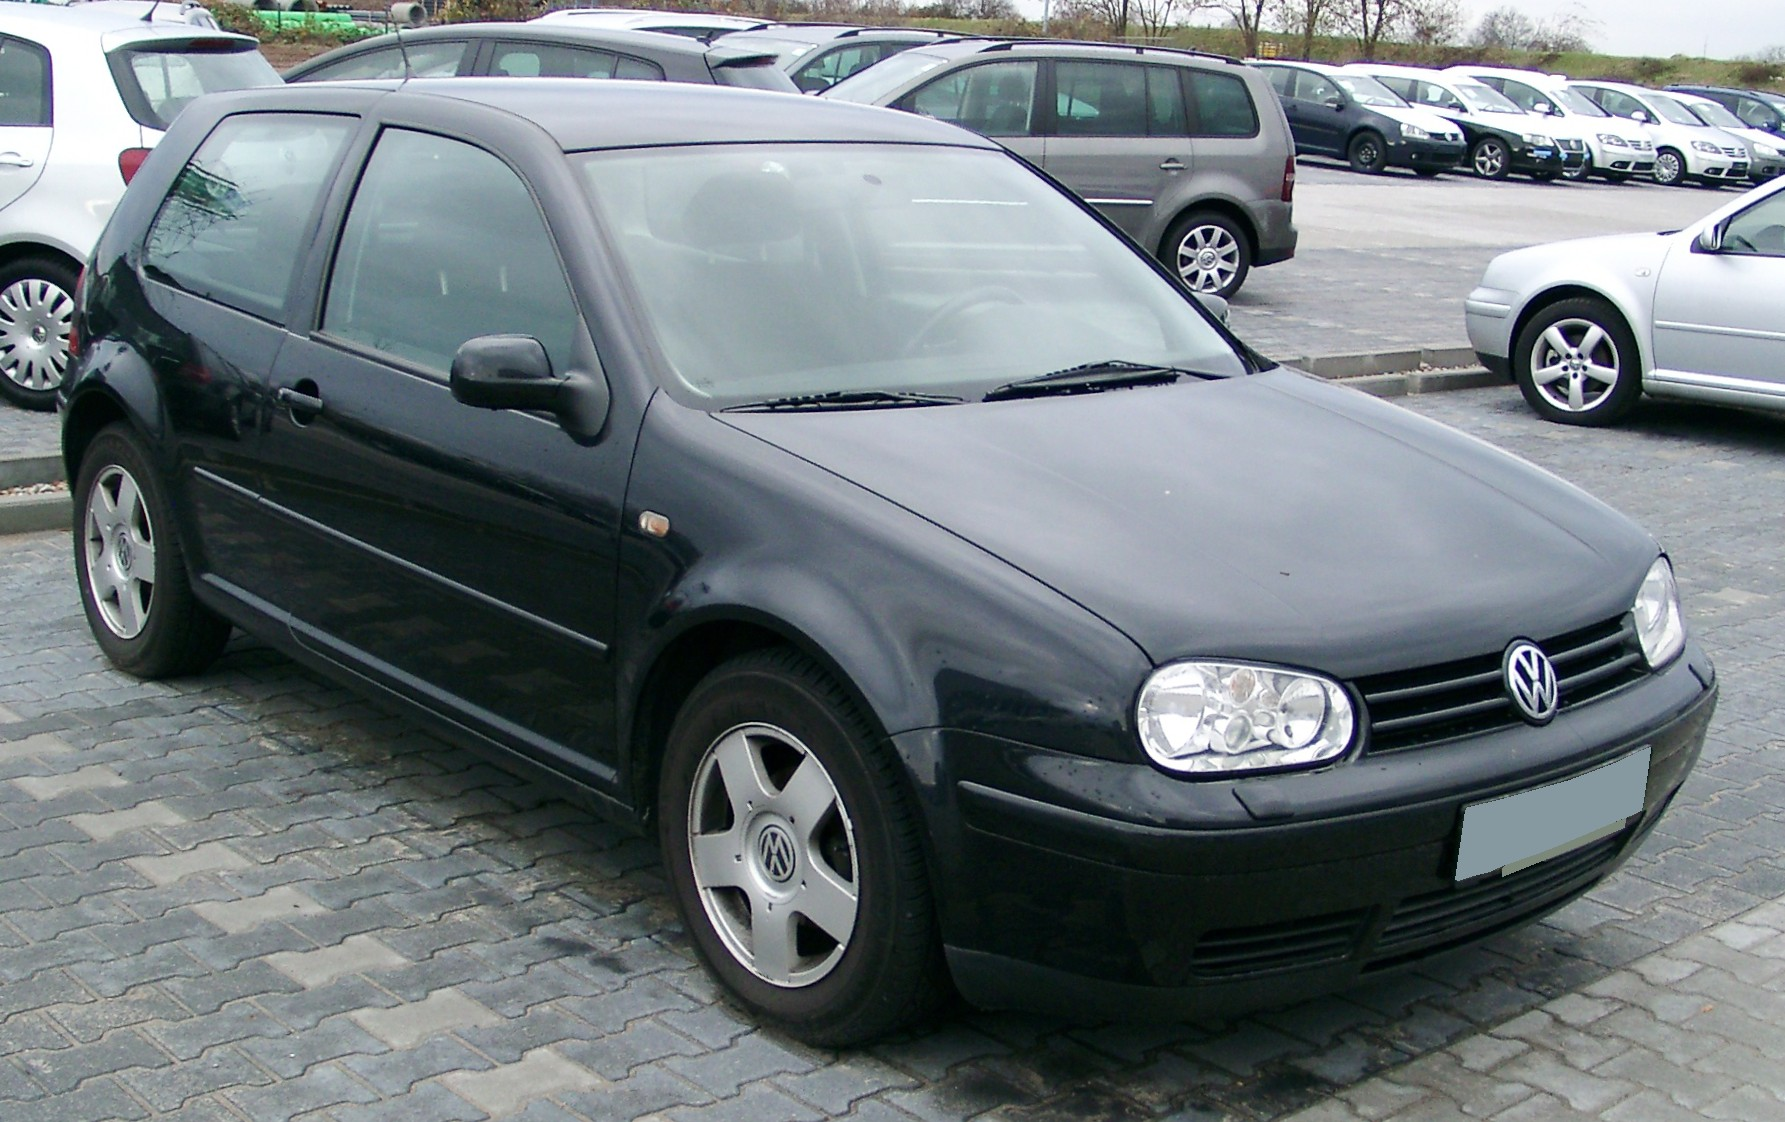 VW Golf 4 photo 04